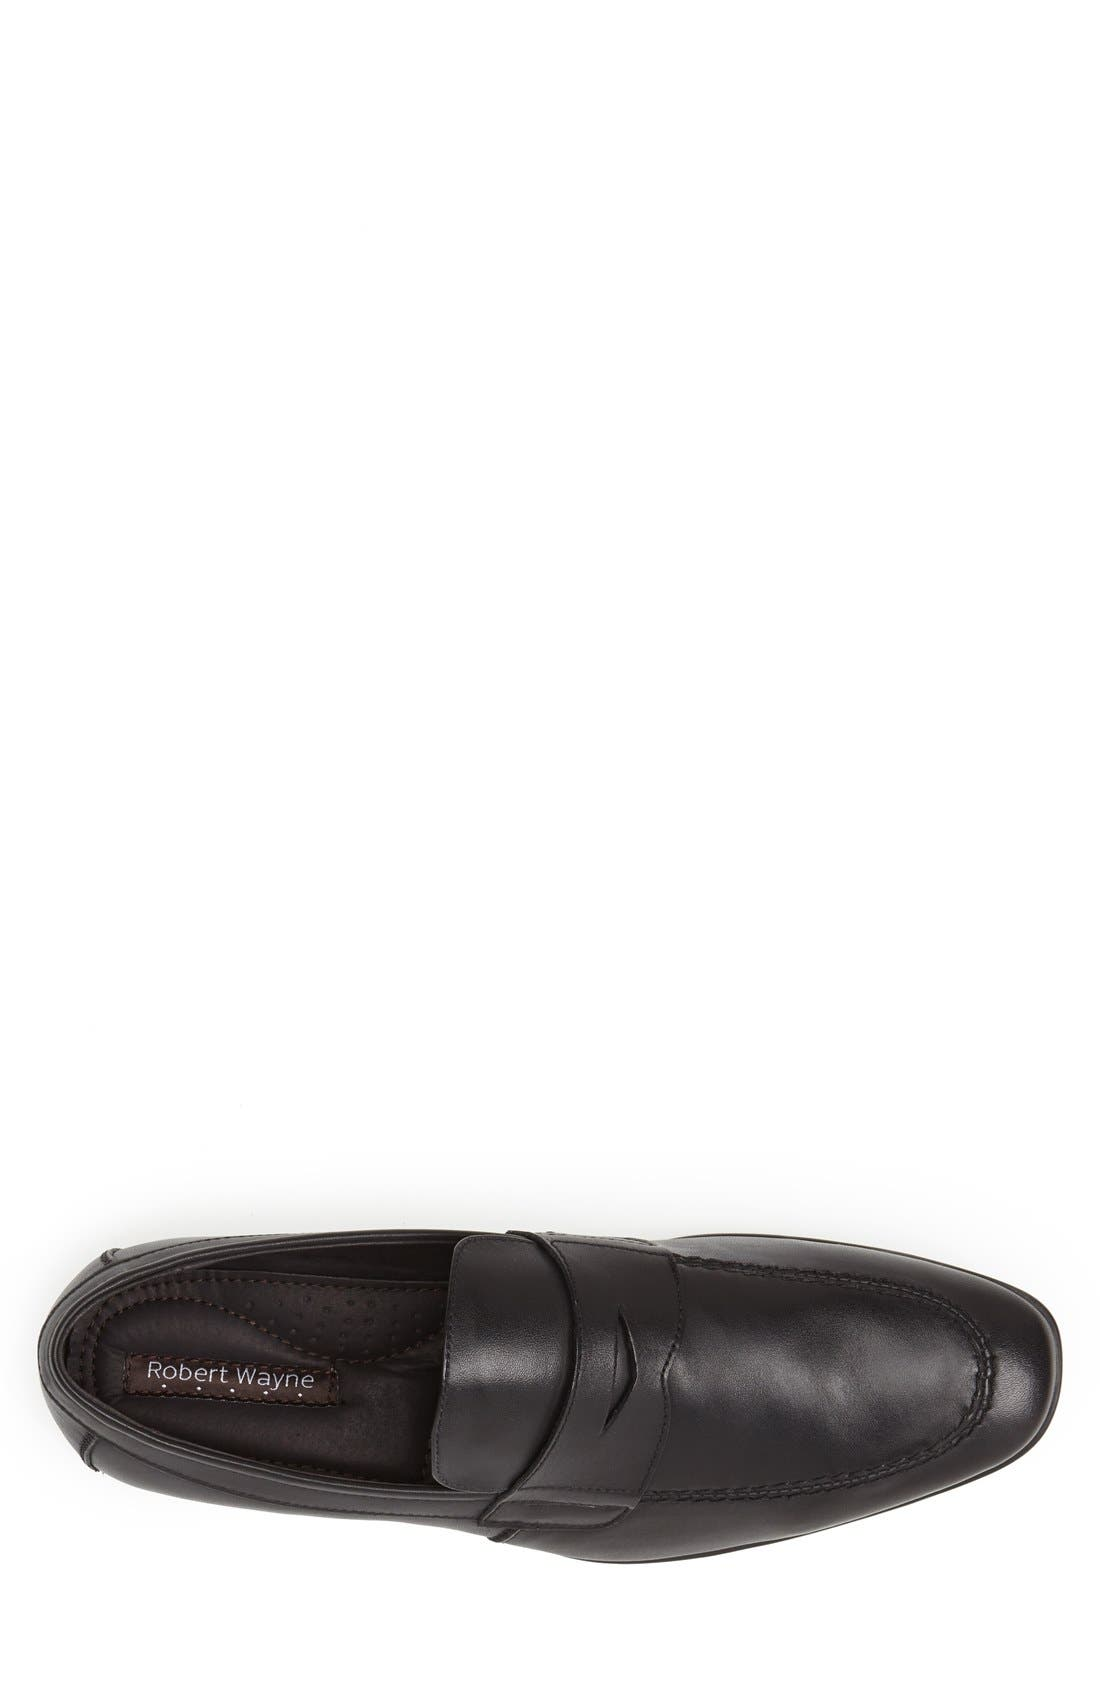 'Reese' Penny Loafer,                             Alternate thumbnail 3, color,                             001